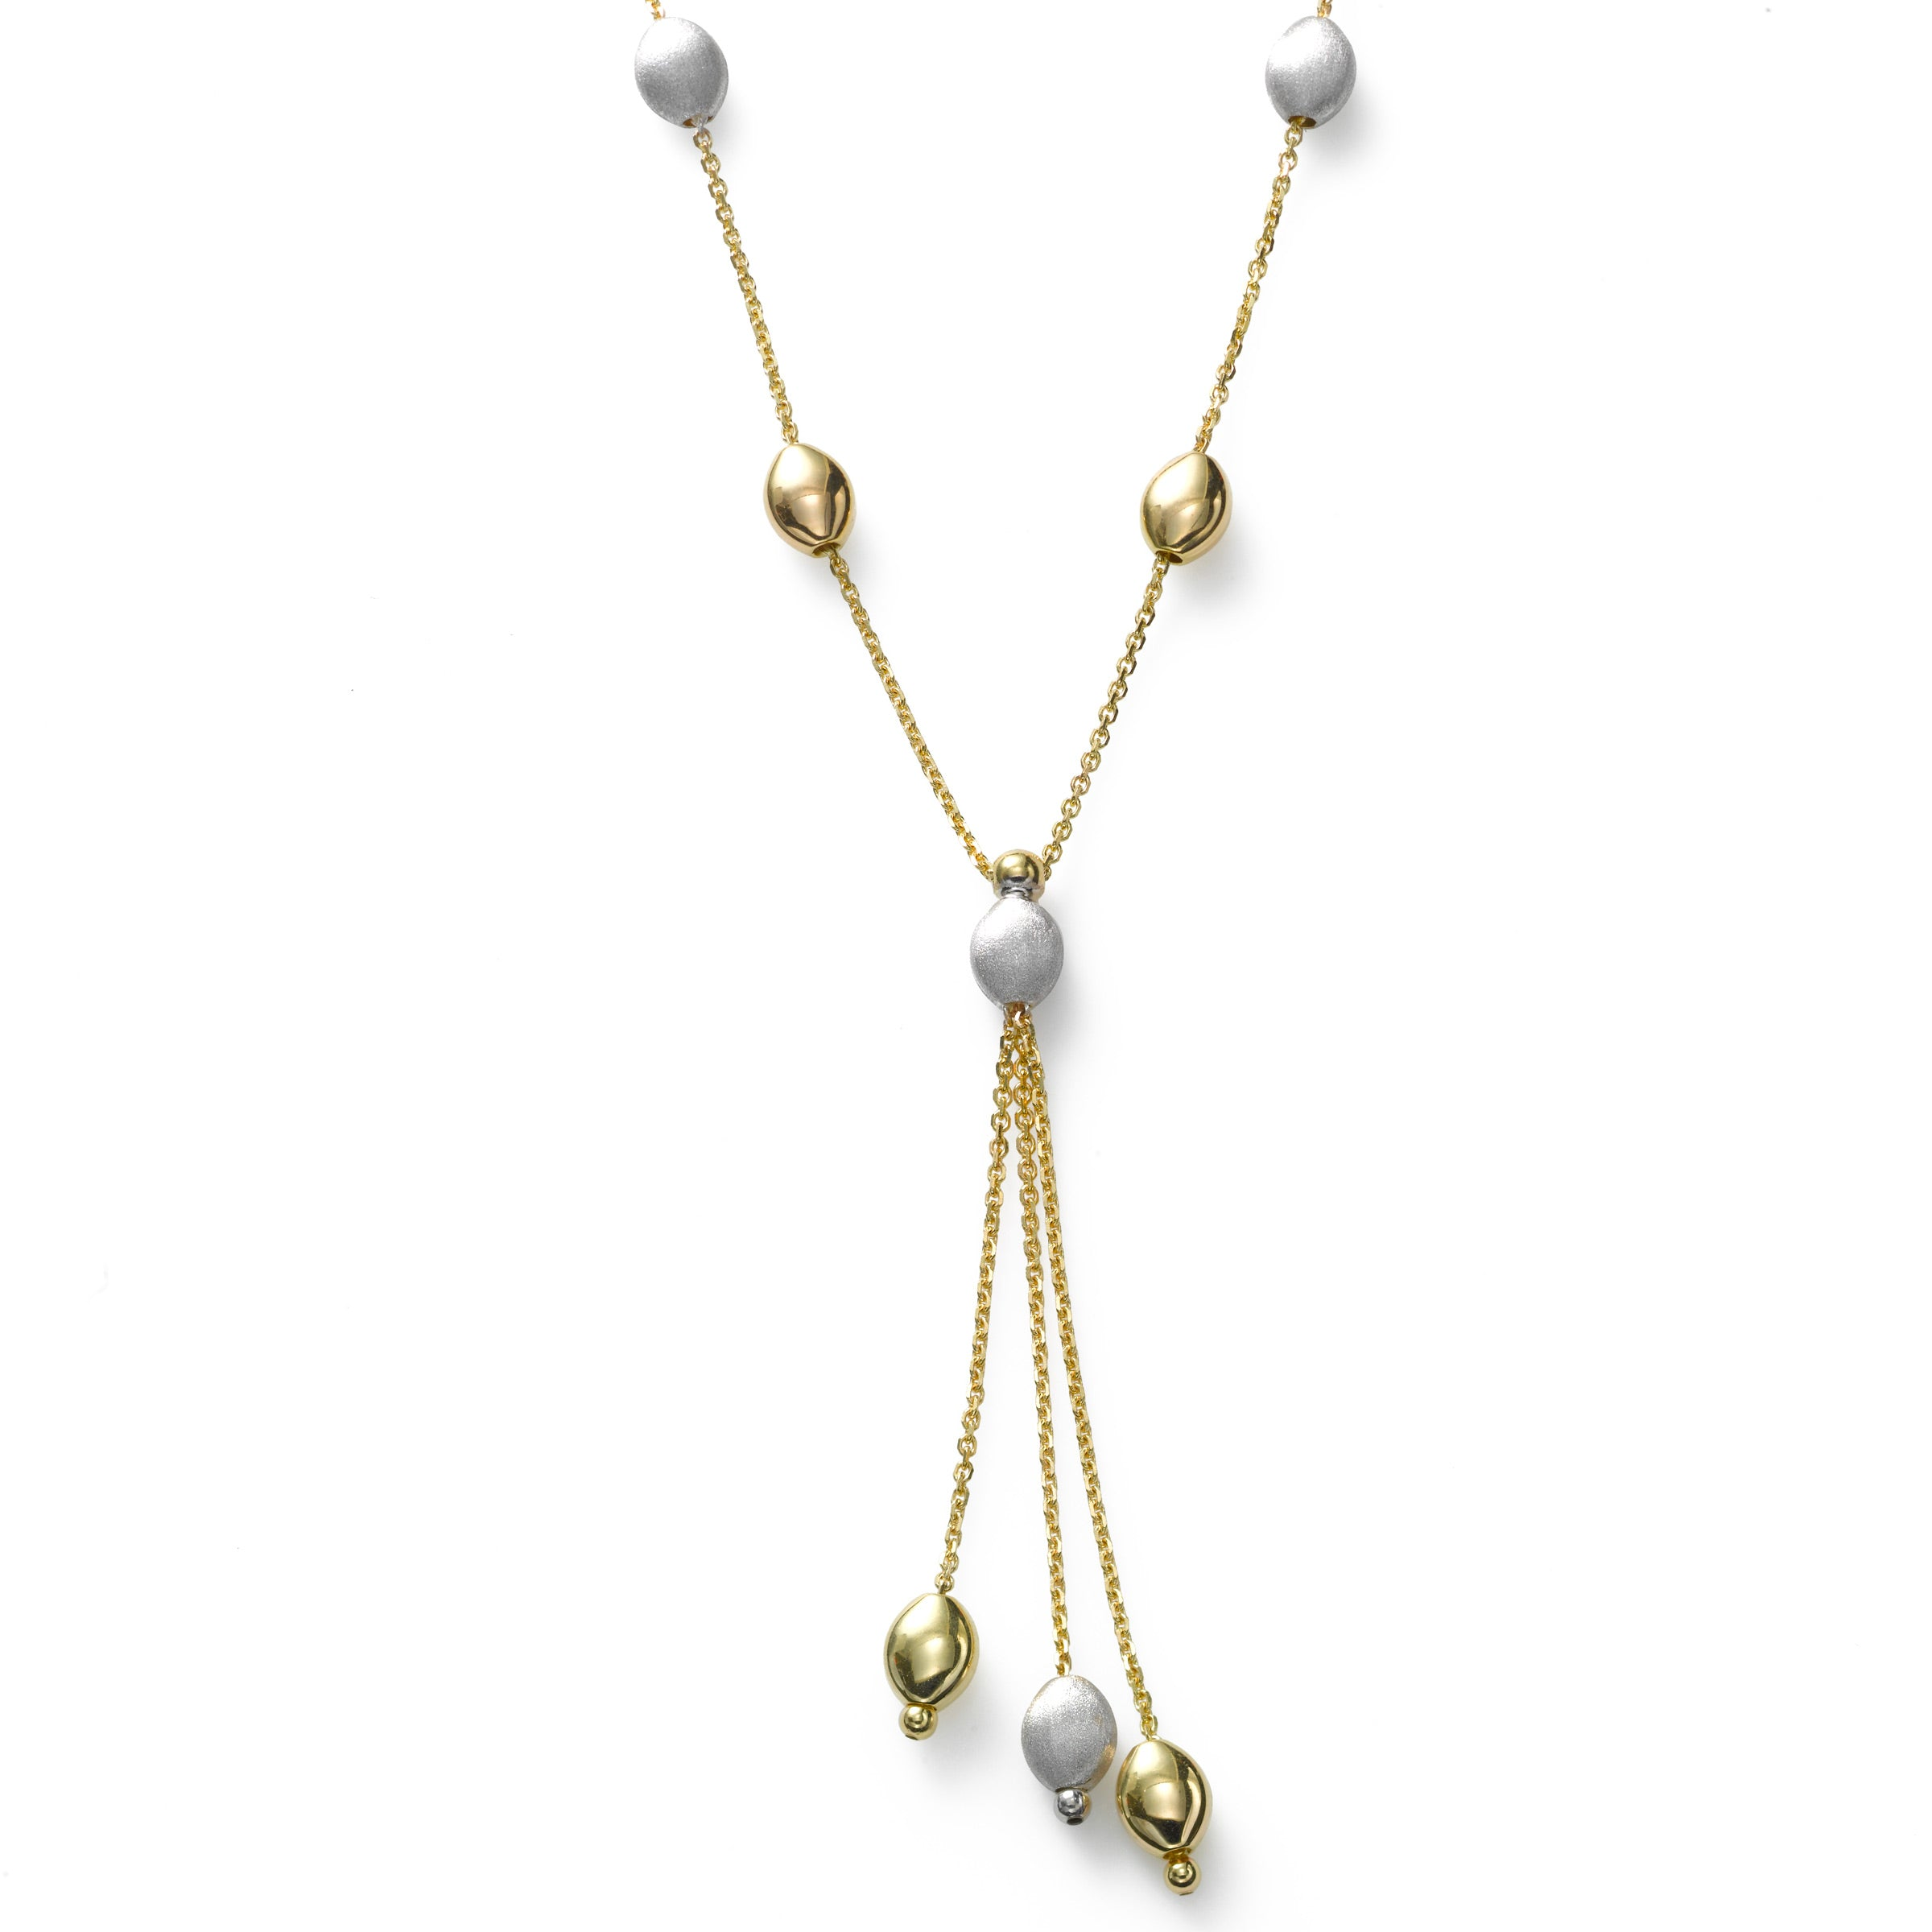 Tricolor Pebble Tassel Necklace, 14K Yellow Gold